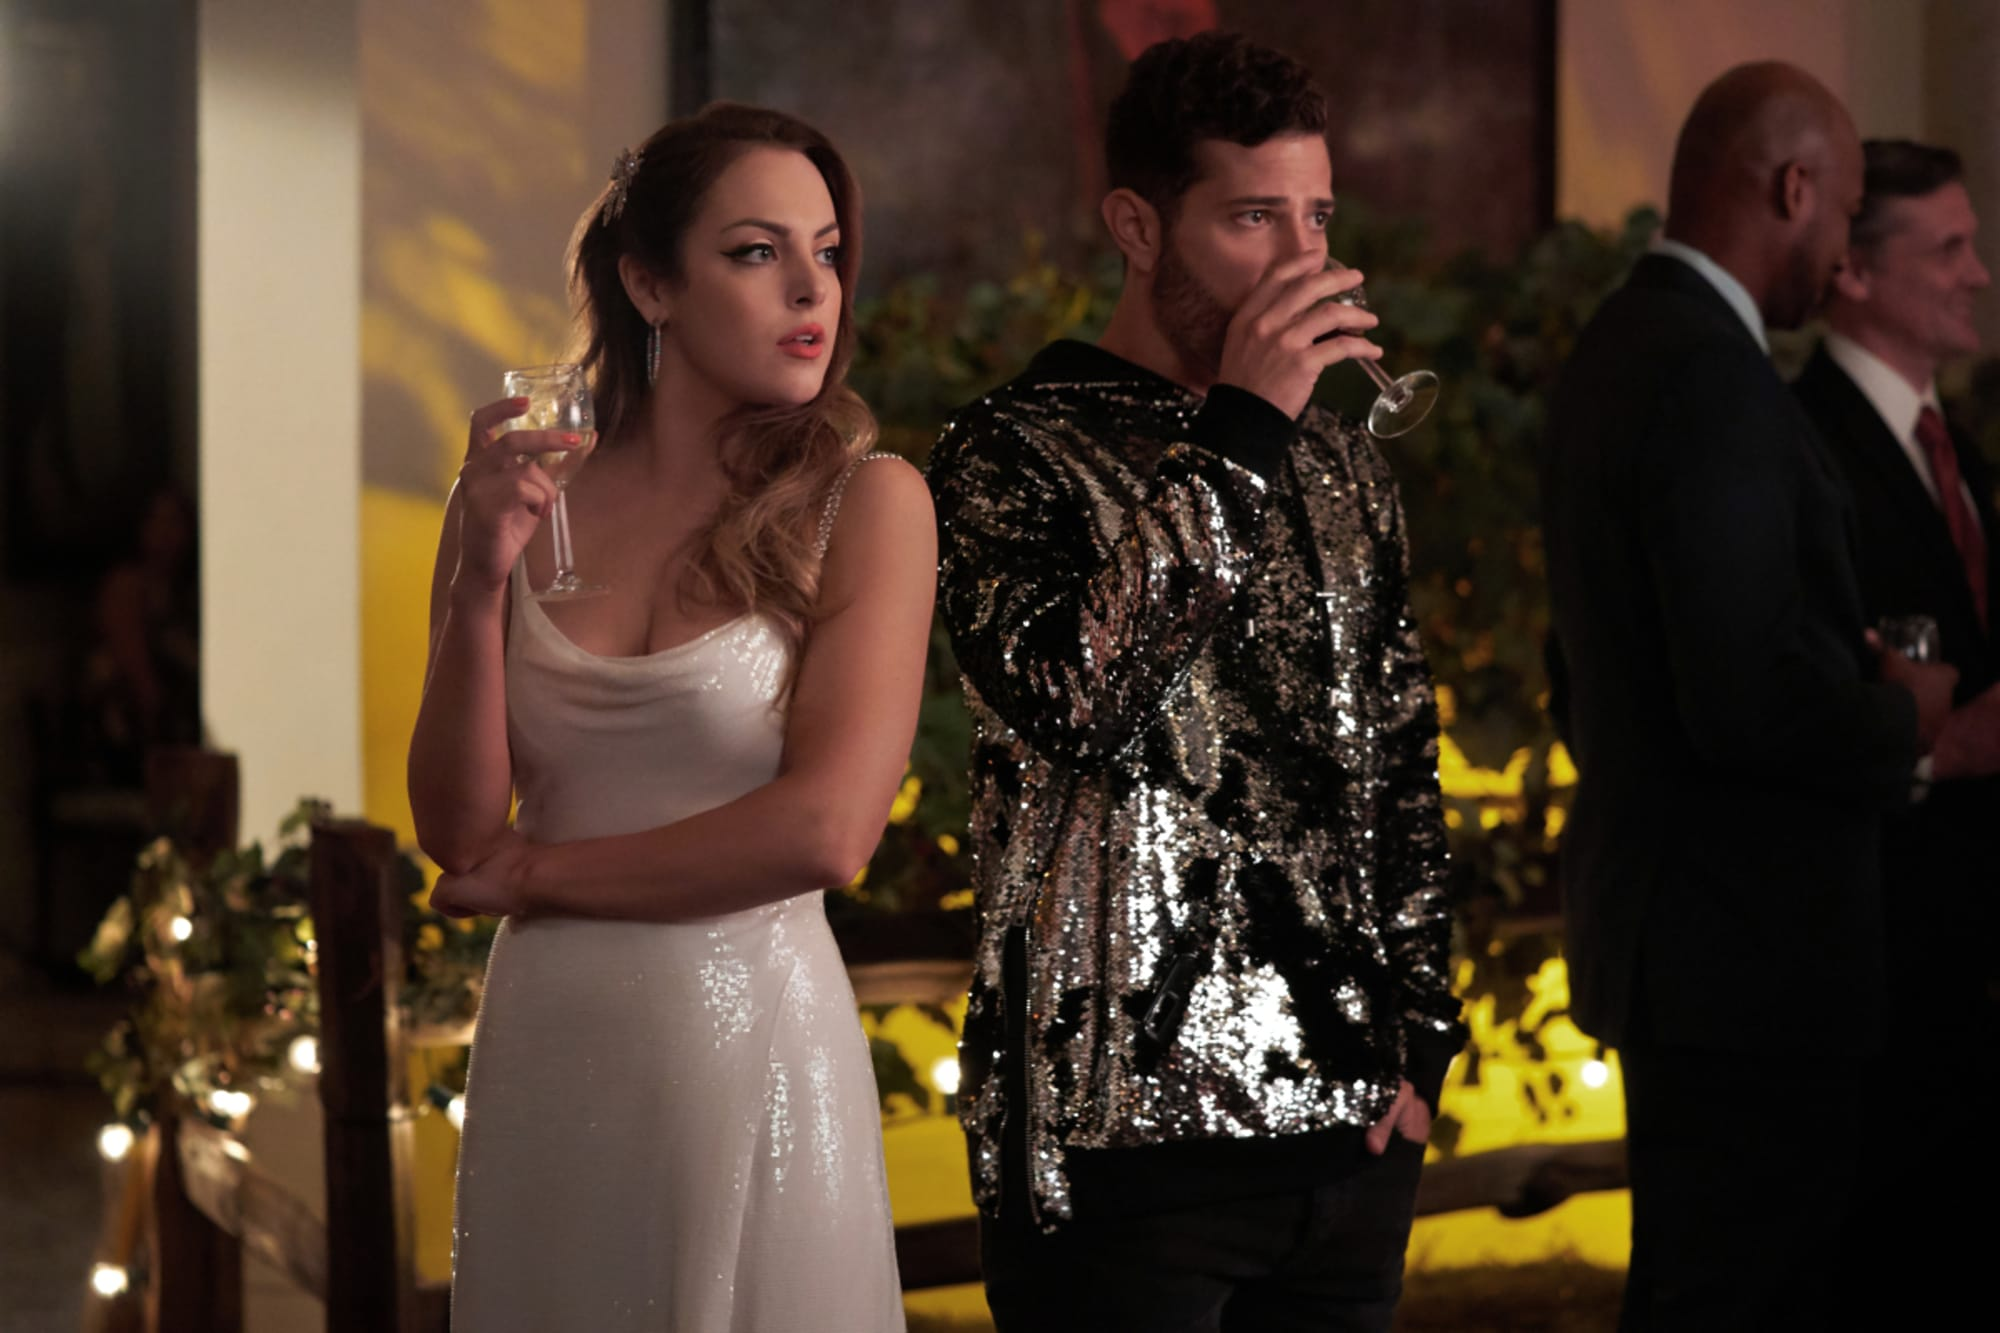 Dynasty Season 5 Release Date, Cast, Synopsis, Trailer, And More